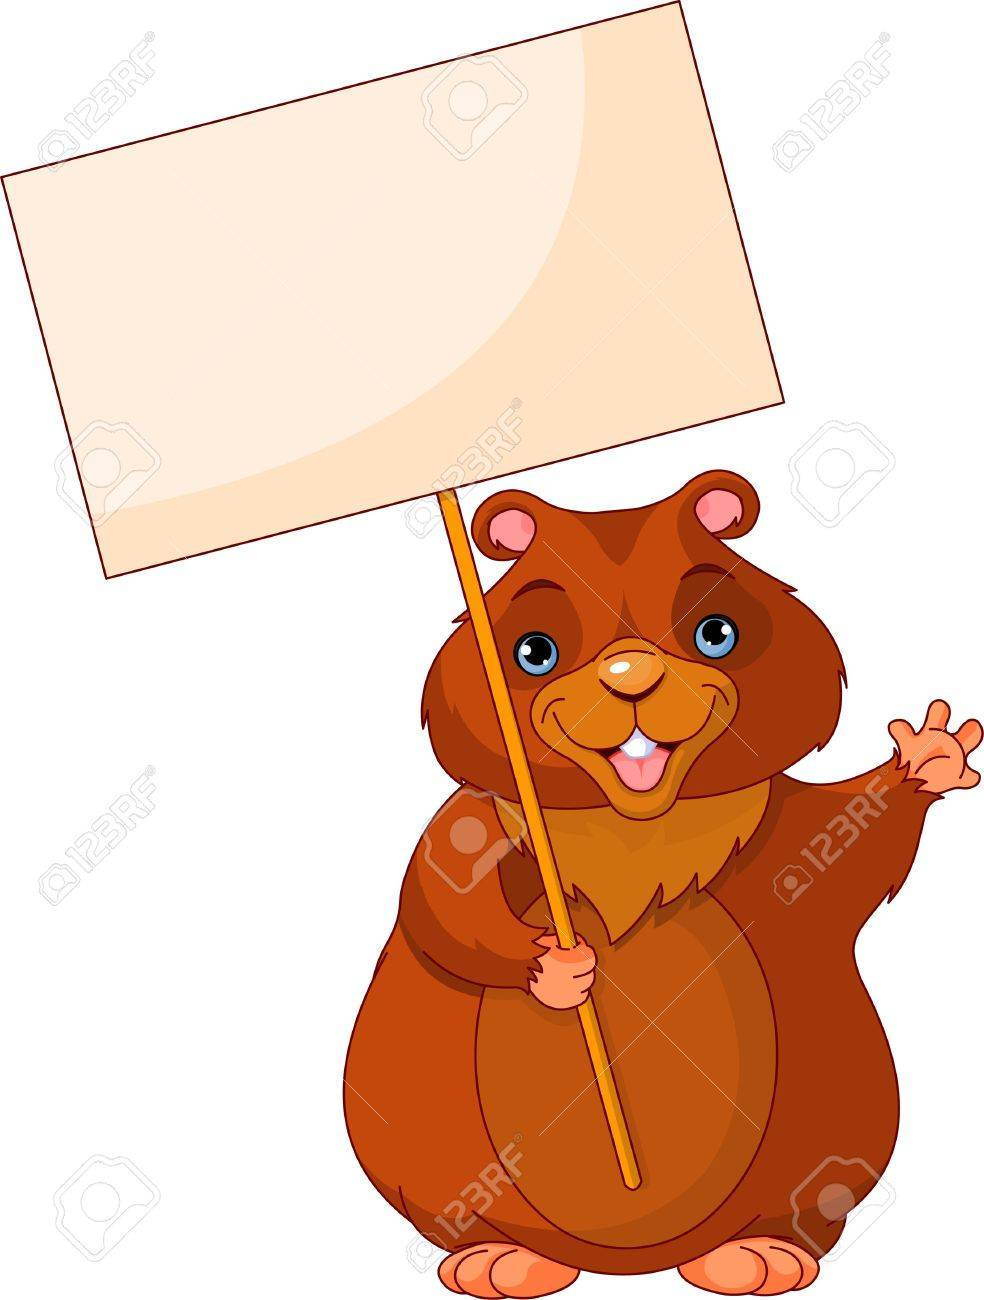 funny woodchuck holding groundhog day sign royalty free cliparts